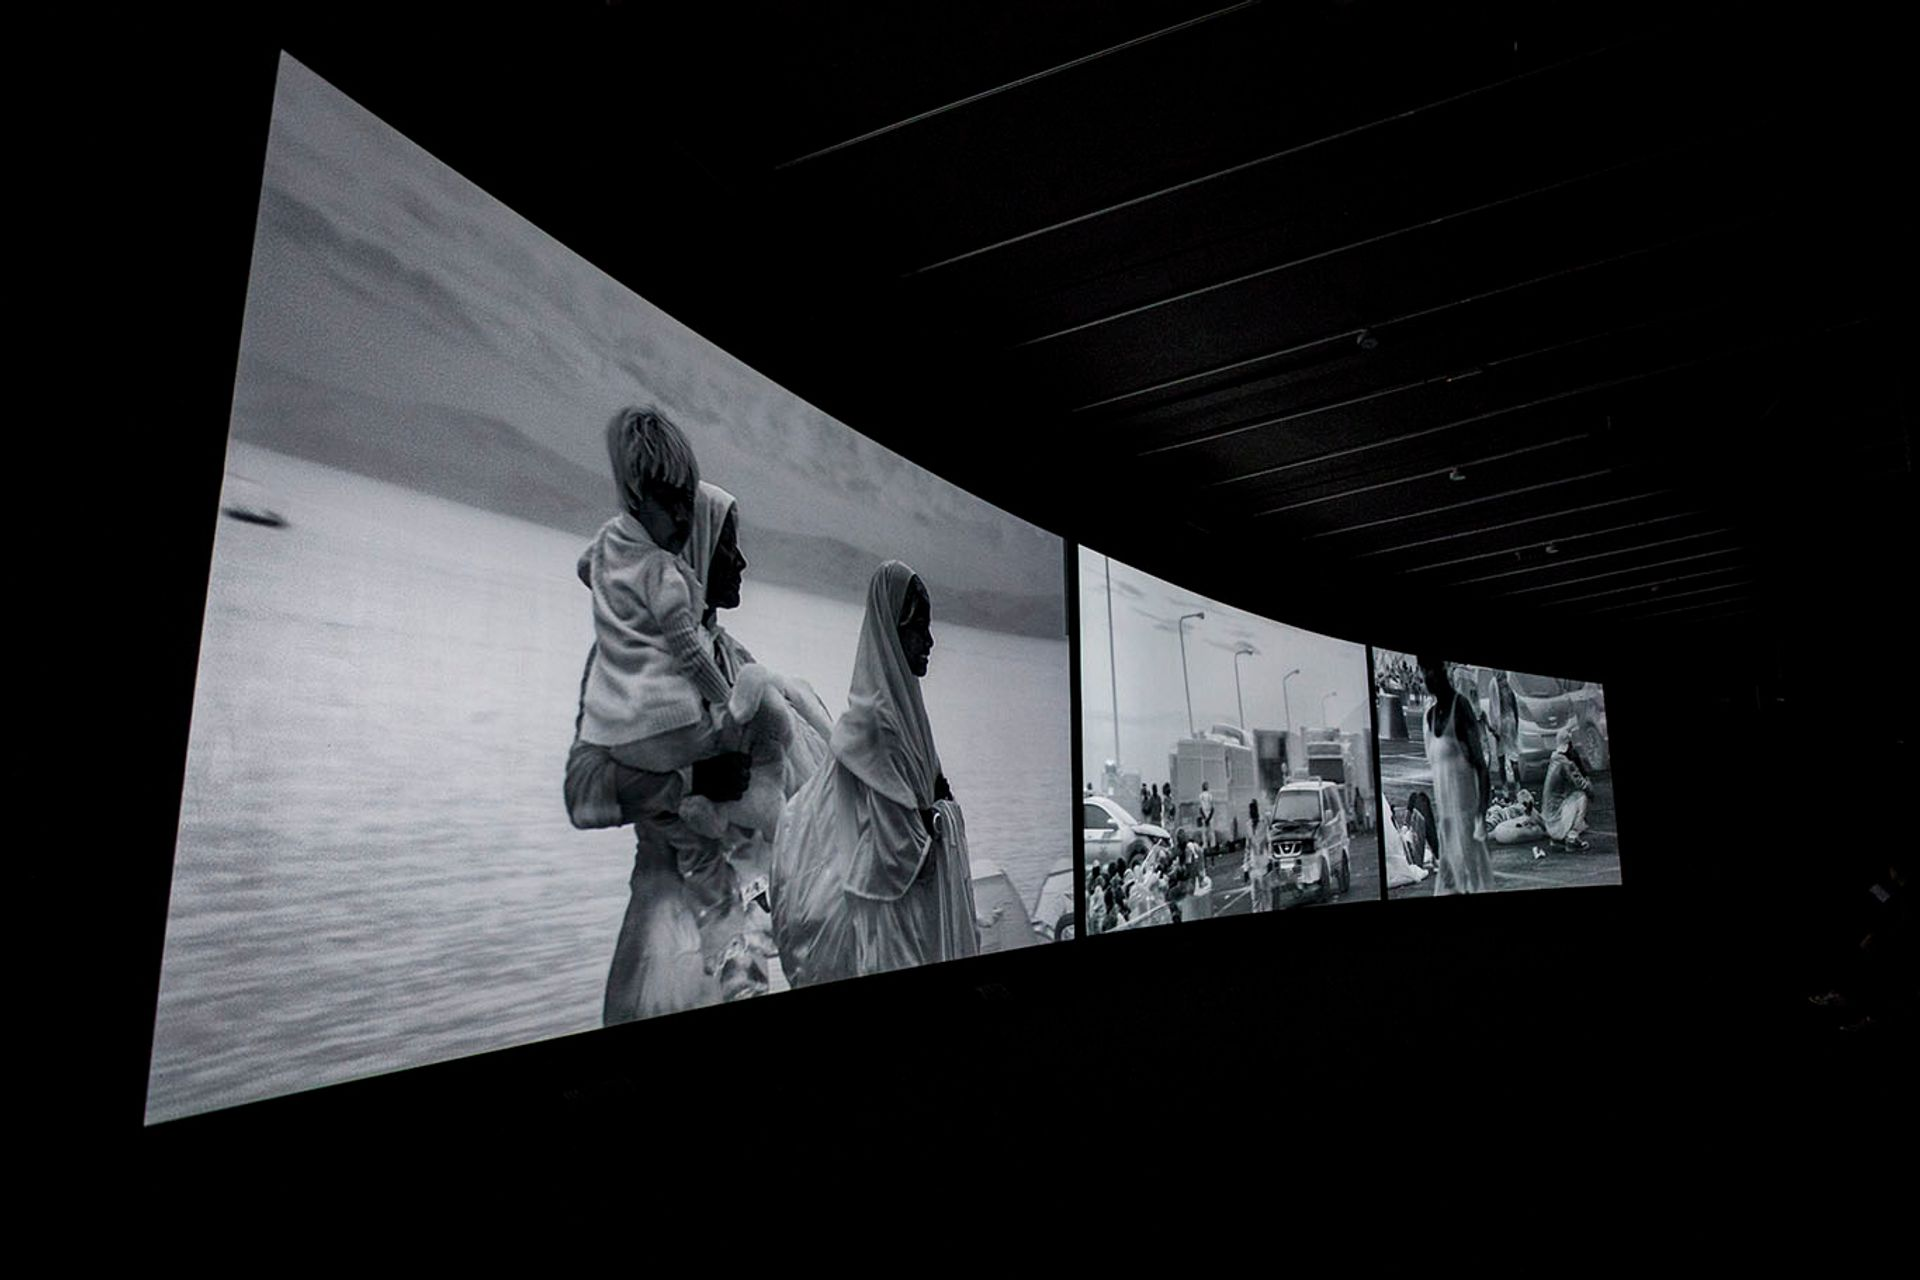 Richard Mosse's Incoming (2014-17), a surround sound video, is part of the exhibition When Home Won't Let You Stay at the Institute for Contemporary Art, Boston Courtesy of the artist and Jack Shainman Gallery, New York